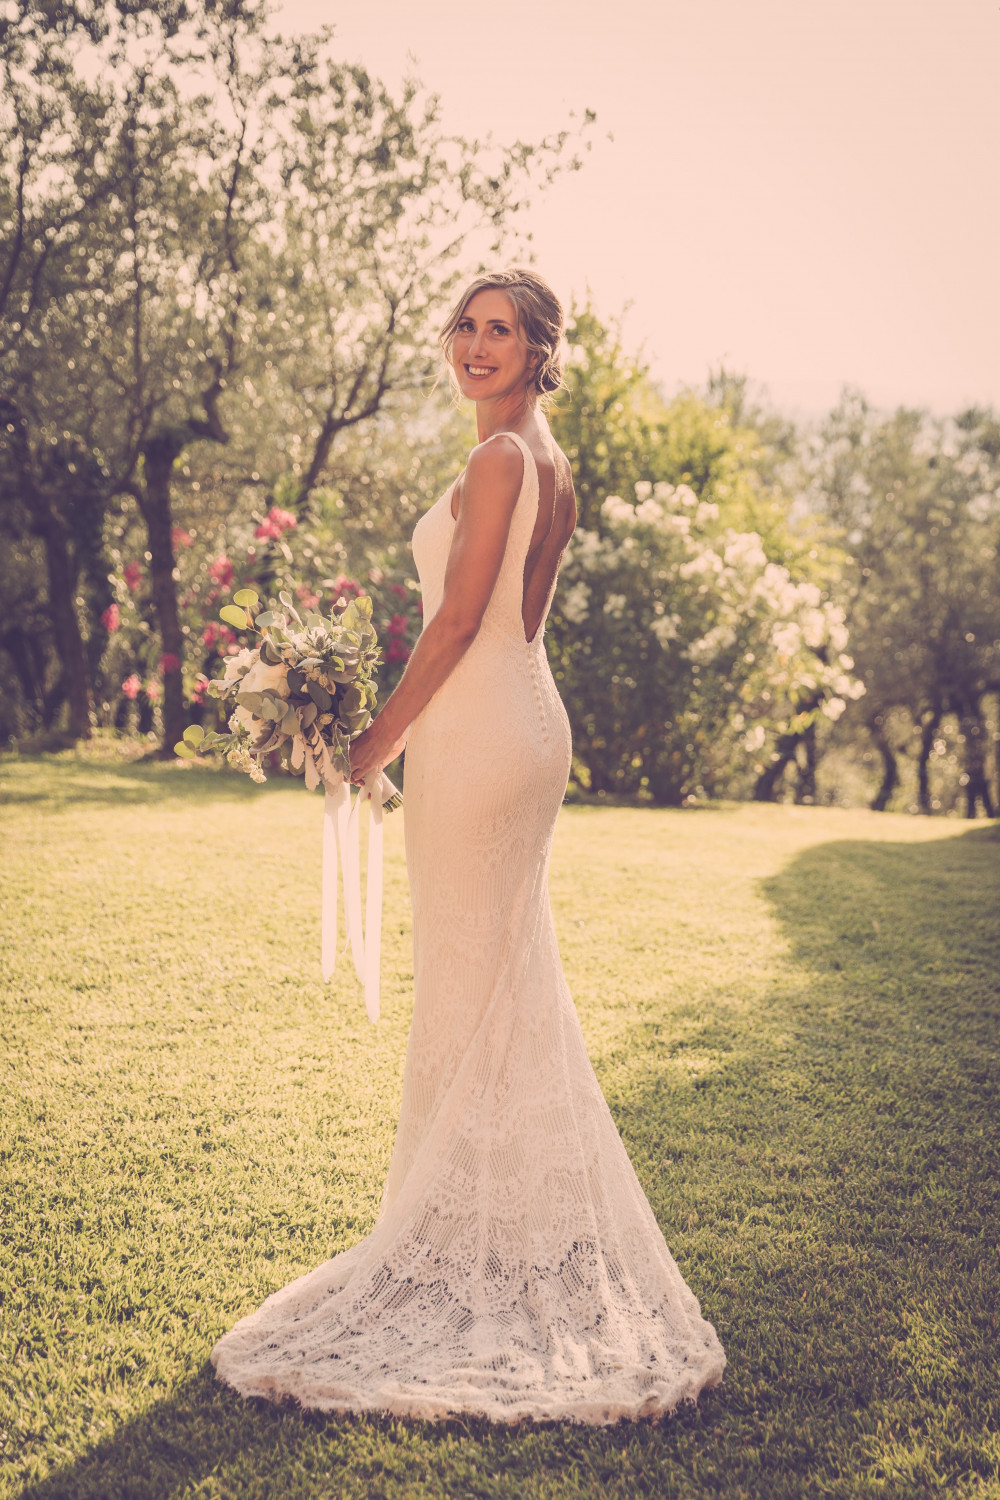 - Make Me Bridal Artist: SJB Hair and Makeup. Photography by: Unknown. #italianwedding #fairytalewedding #londonbride #londonwedding #destinationwedding #weddingdayhairandmakeup #weddingdayhairandmakeupartist #londonhairandmakeup #destinantionbride